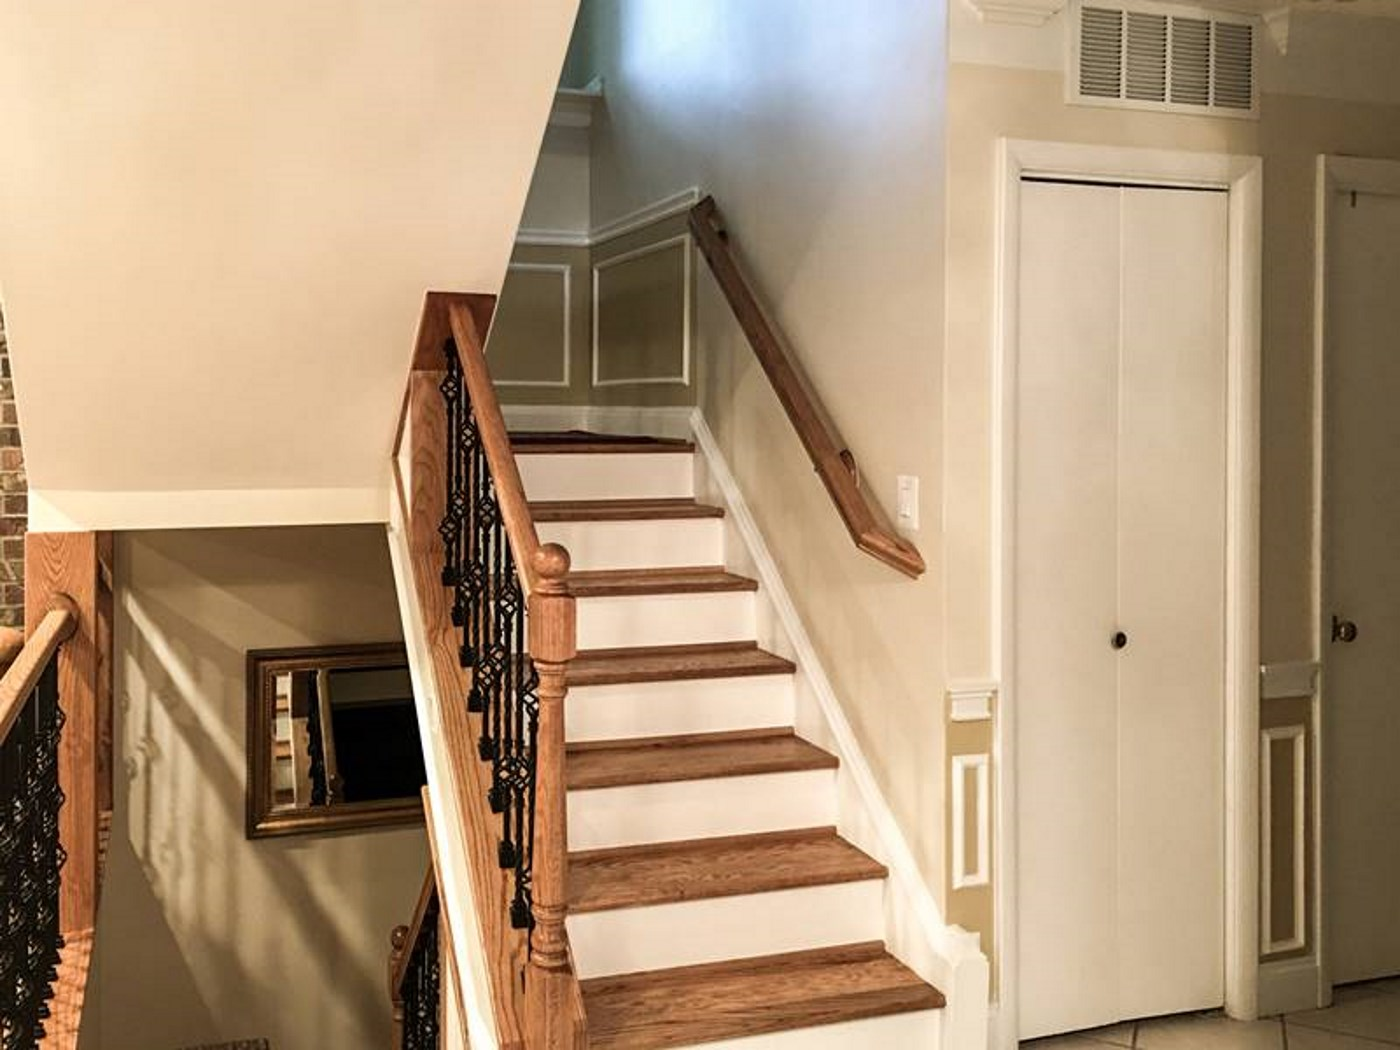 Elite Contractor Services, a leading Home Remodeling Company Serving Mt. Vernon, Virginia, Announces New City-Specific Page